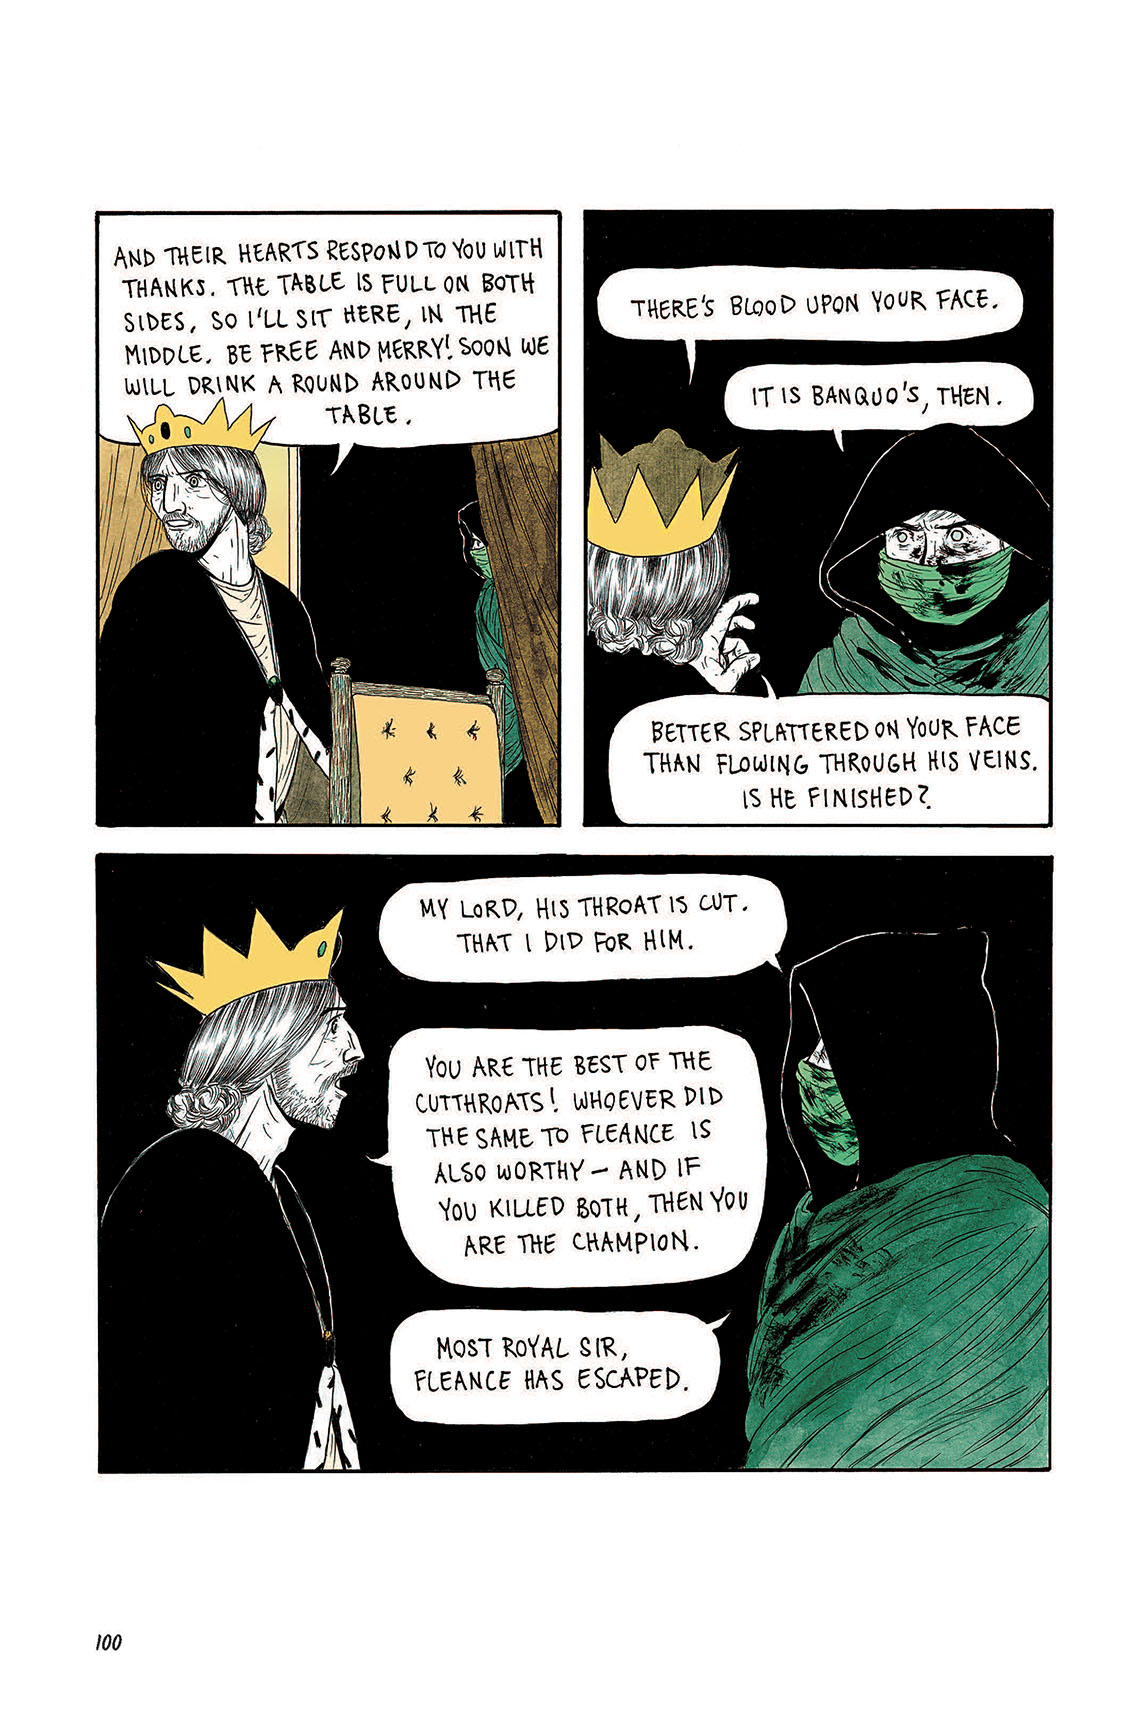 Macbeth Act 3 Scene 4 Page 100 Graphic Novel Sparknotes Sparknote 6